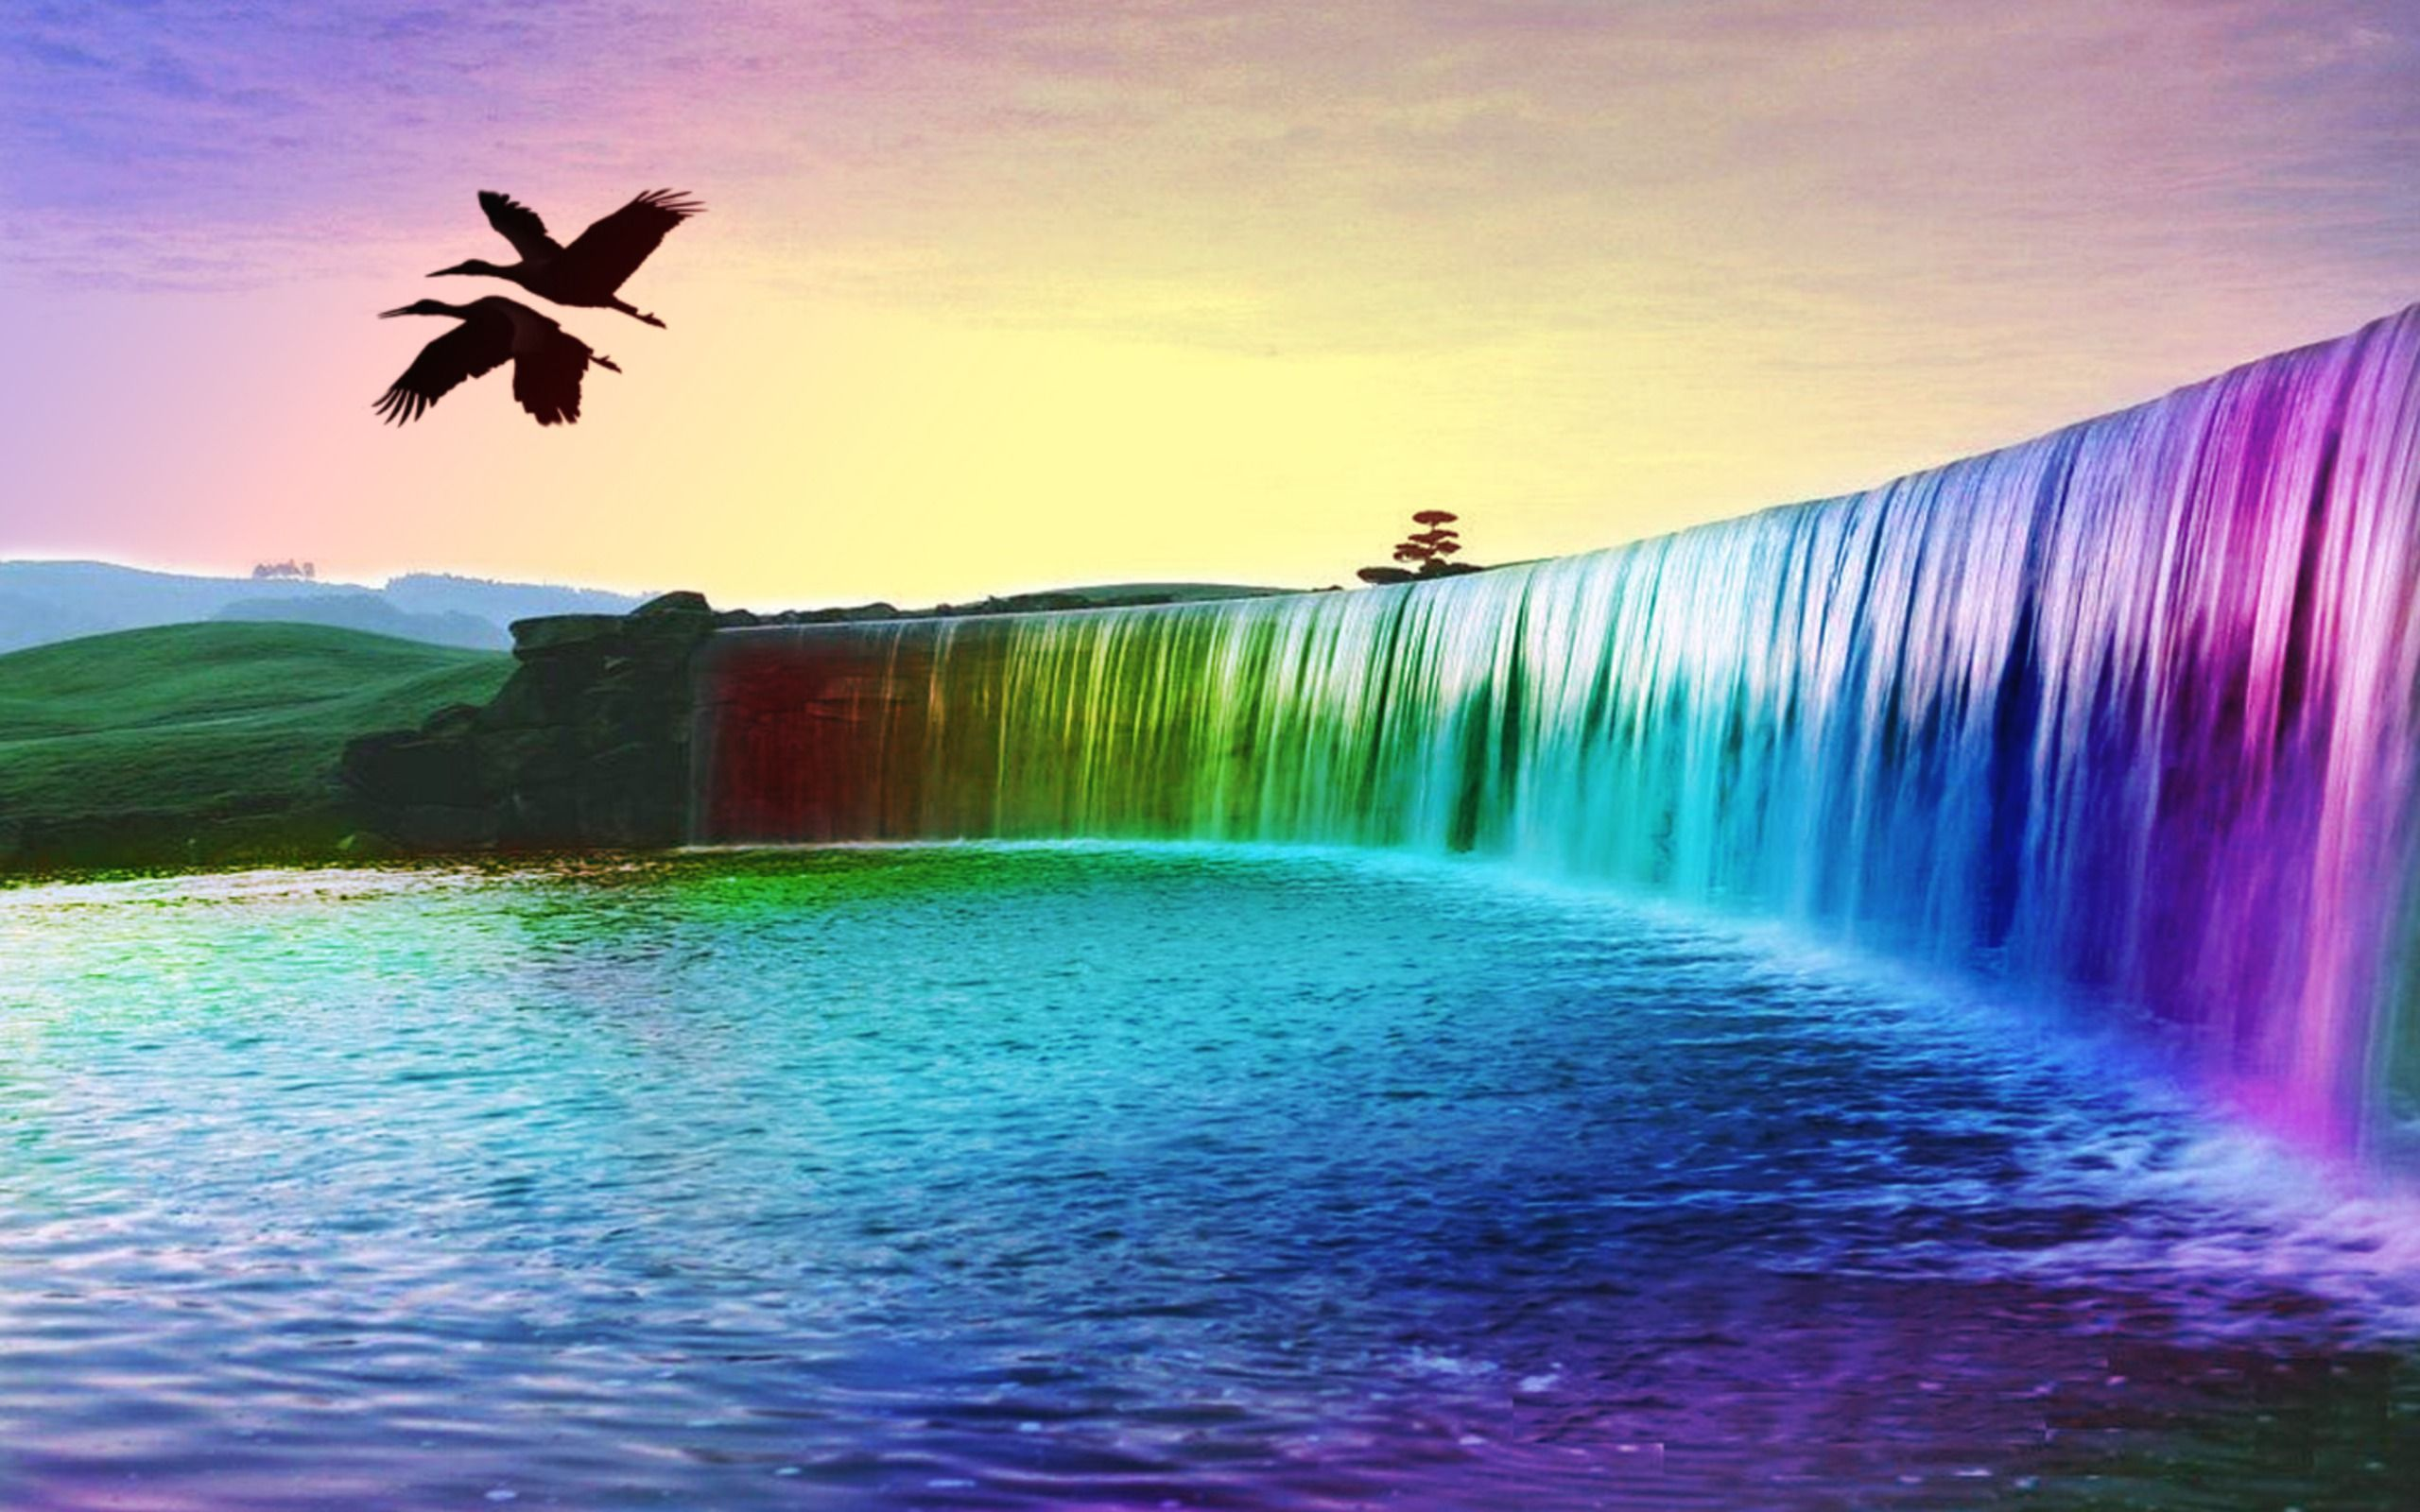 Beautiful Scenery Widescreen High Quality Wallpaper Photo Rainbow Waterfall Colorful Landscape Waterfall Wallpaper